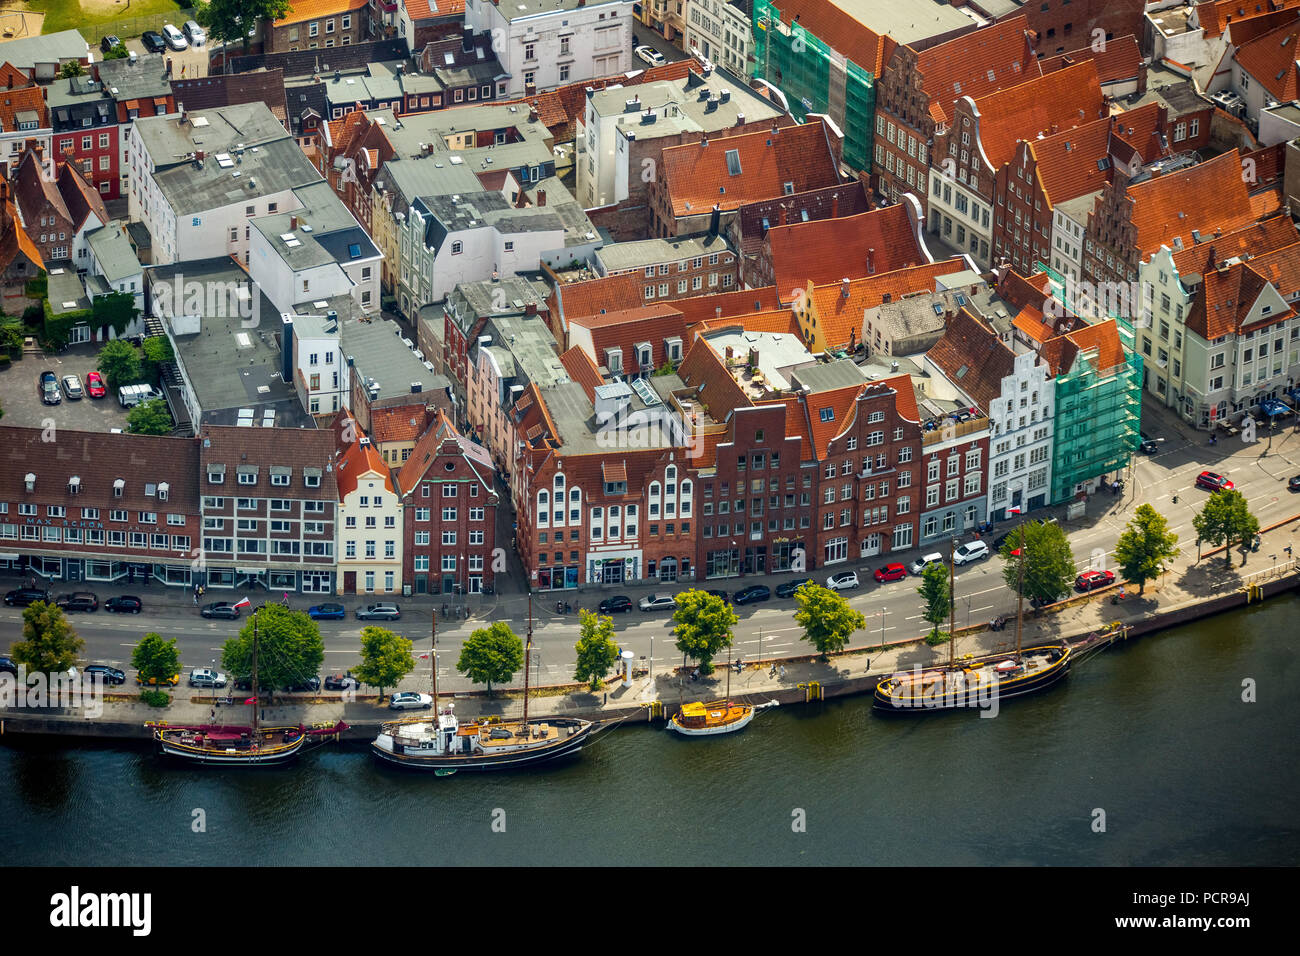 Townhouses at the Trave, Lübeck, Bay of Lübeck, Hanseatic city, Schleswig-Holstein, Germany - Stock Image